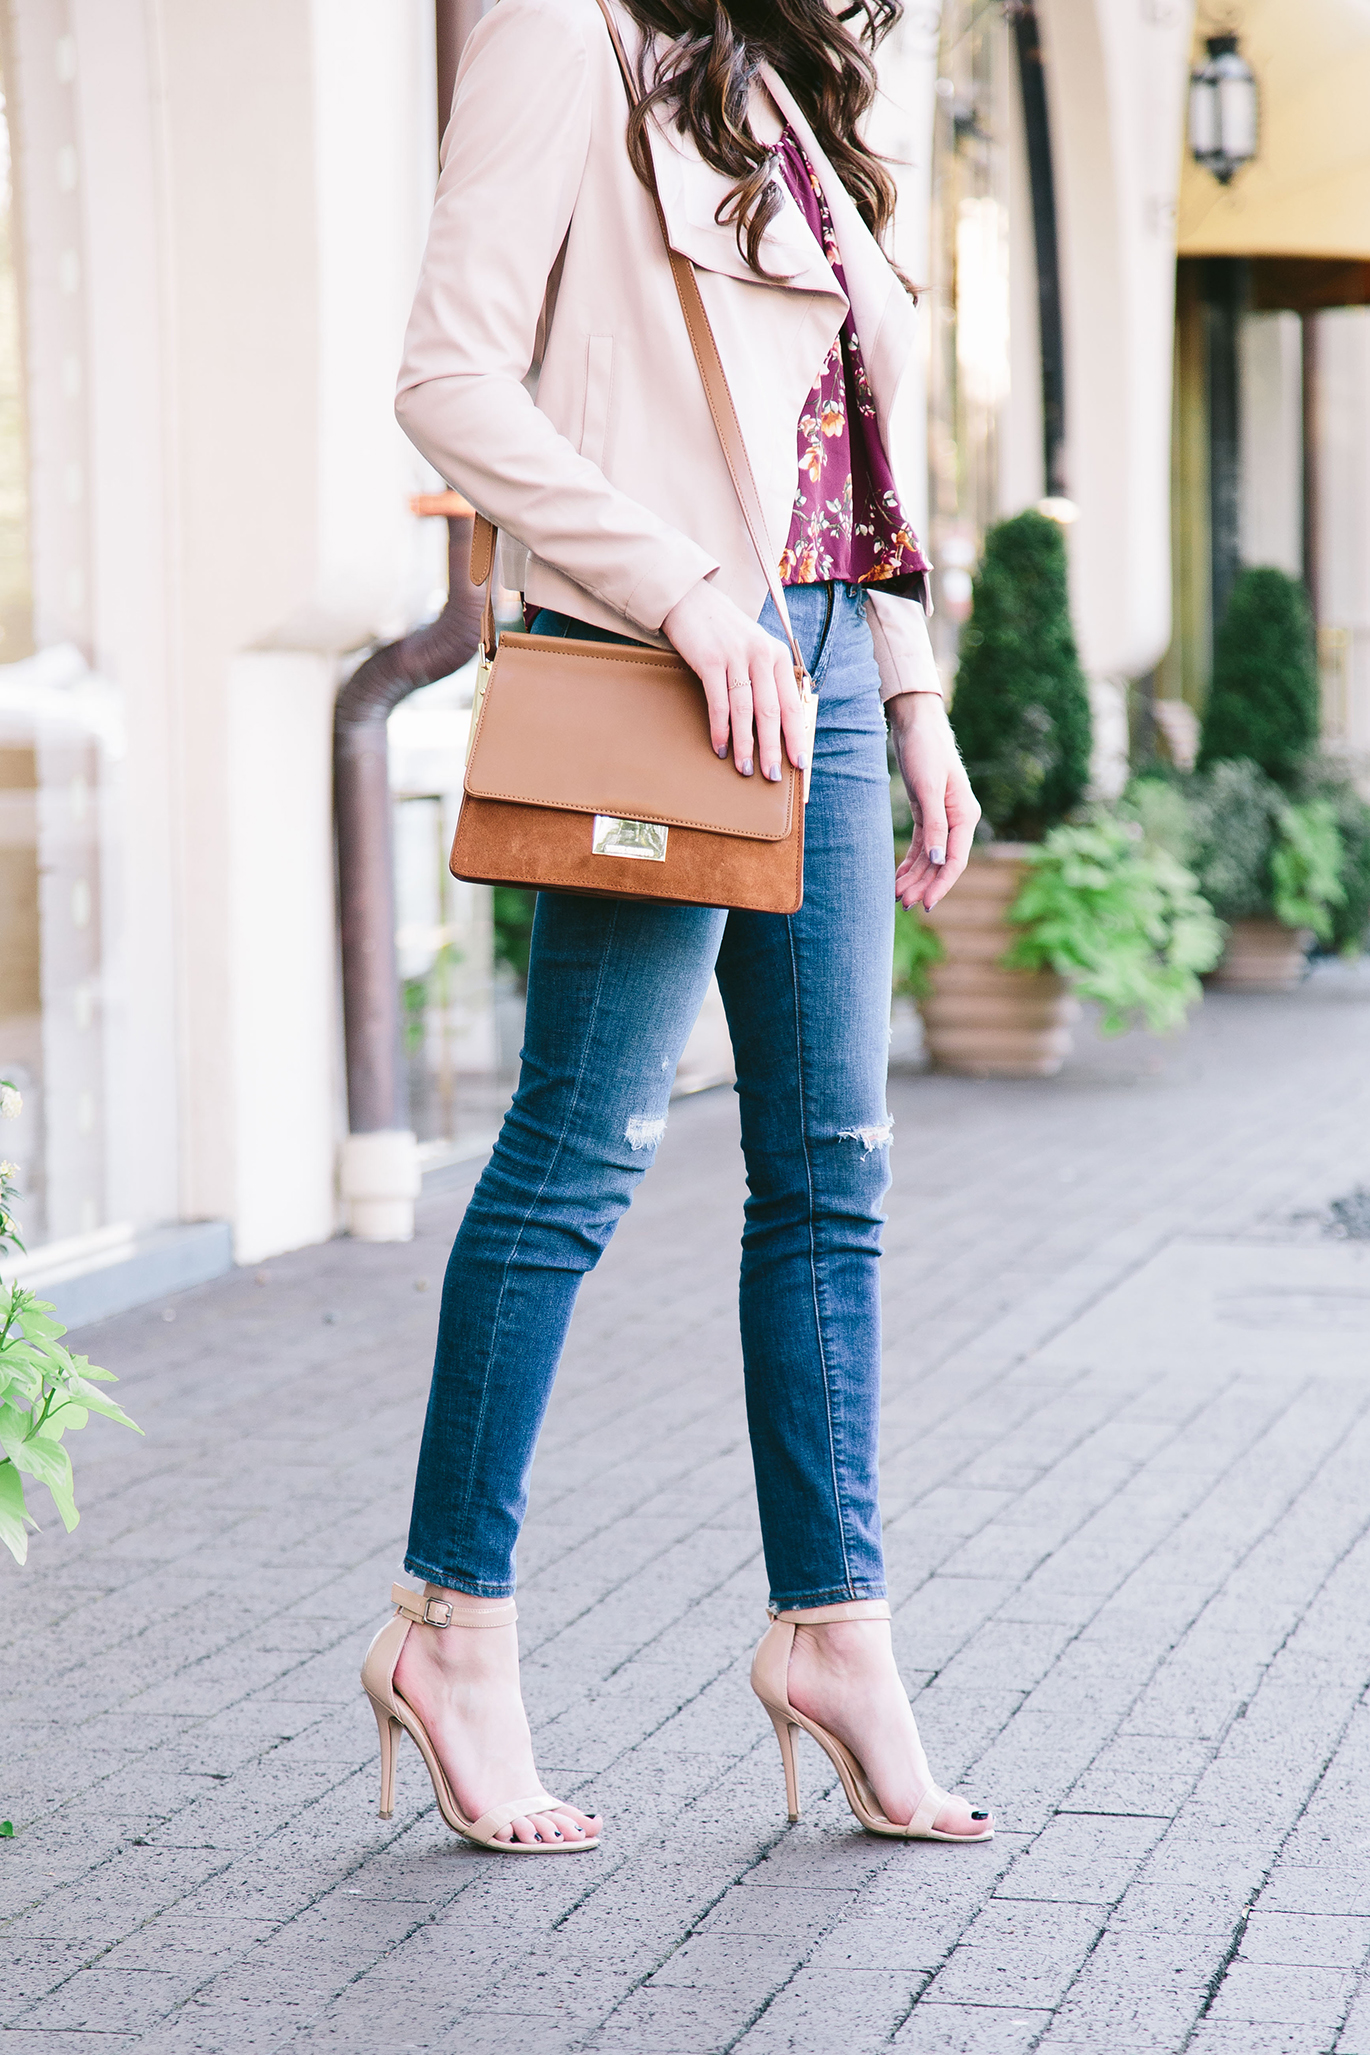 Budget friendly nude heels